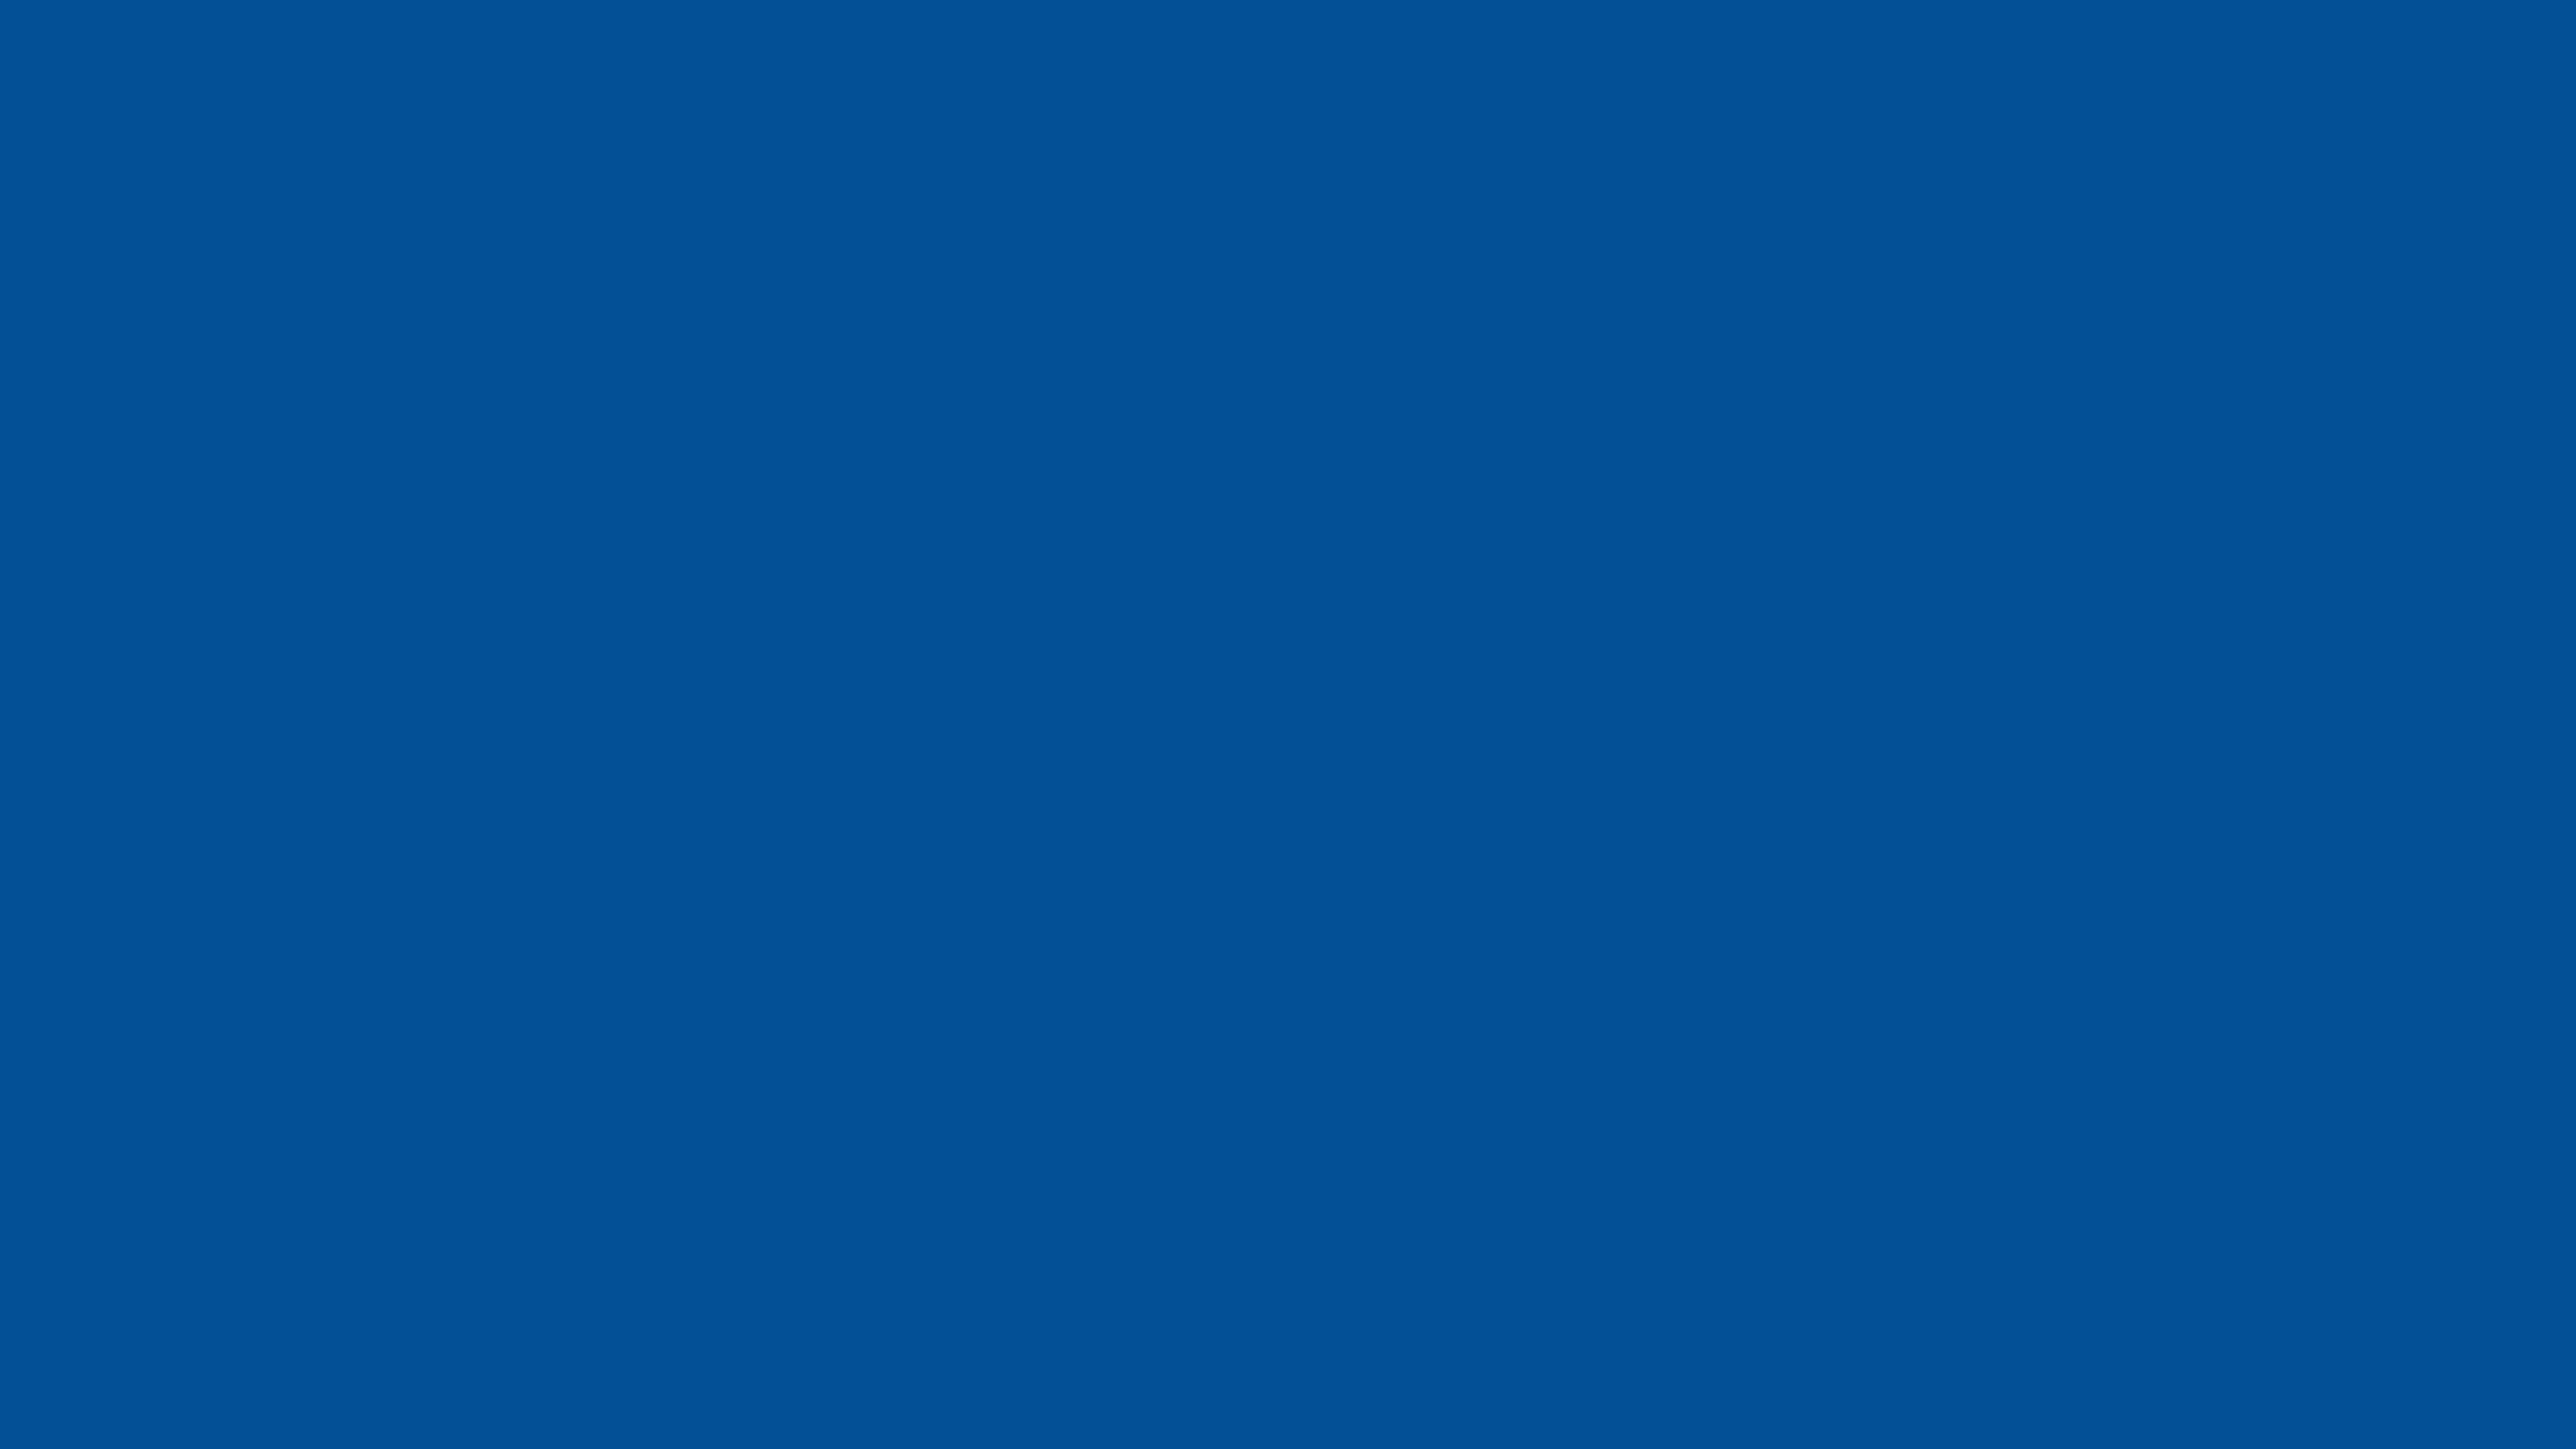 5120x2880 Medium Electric Blue Solid Color Background